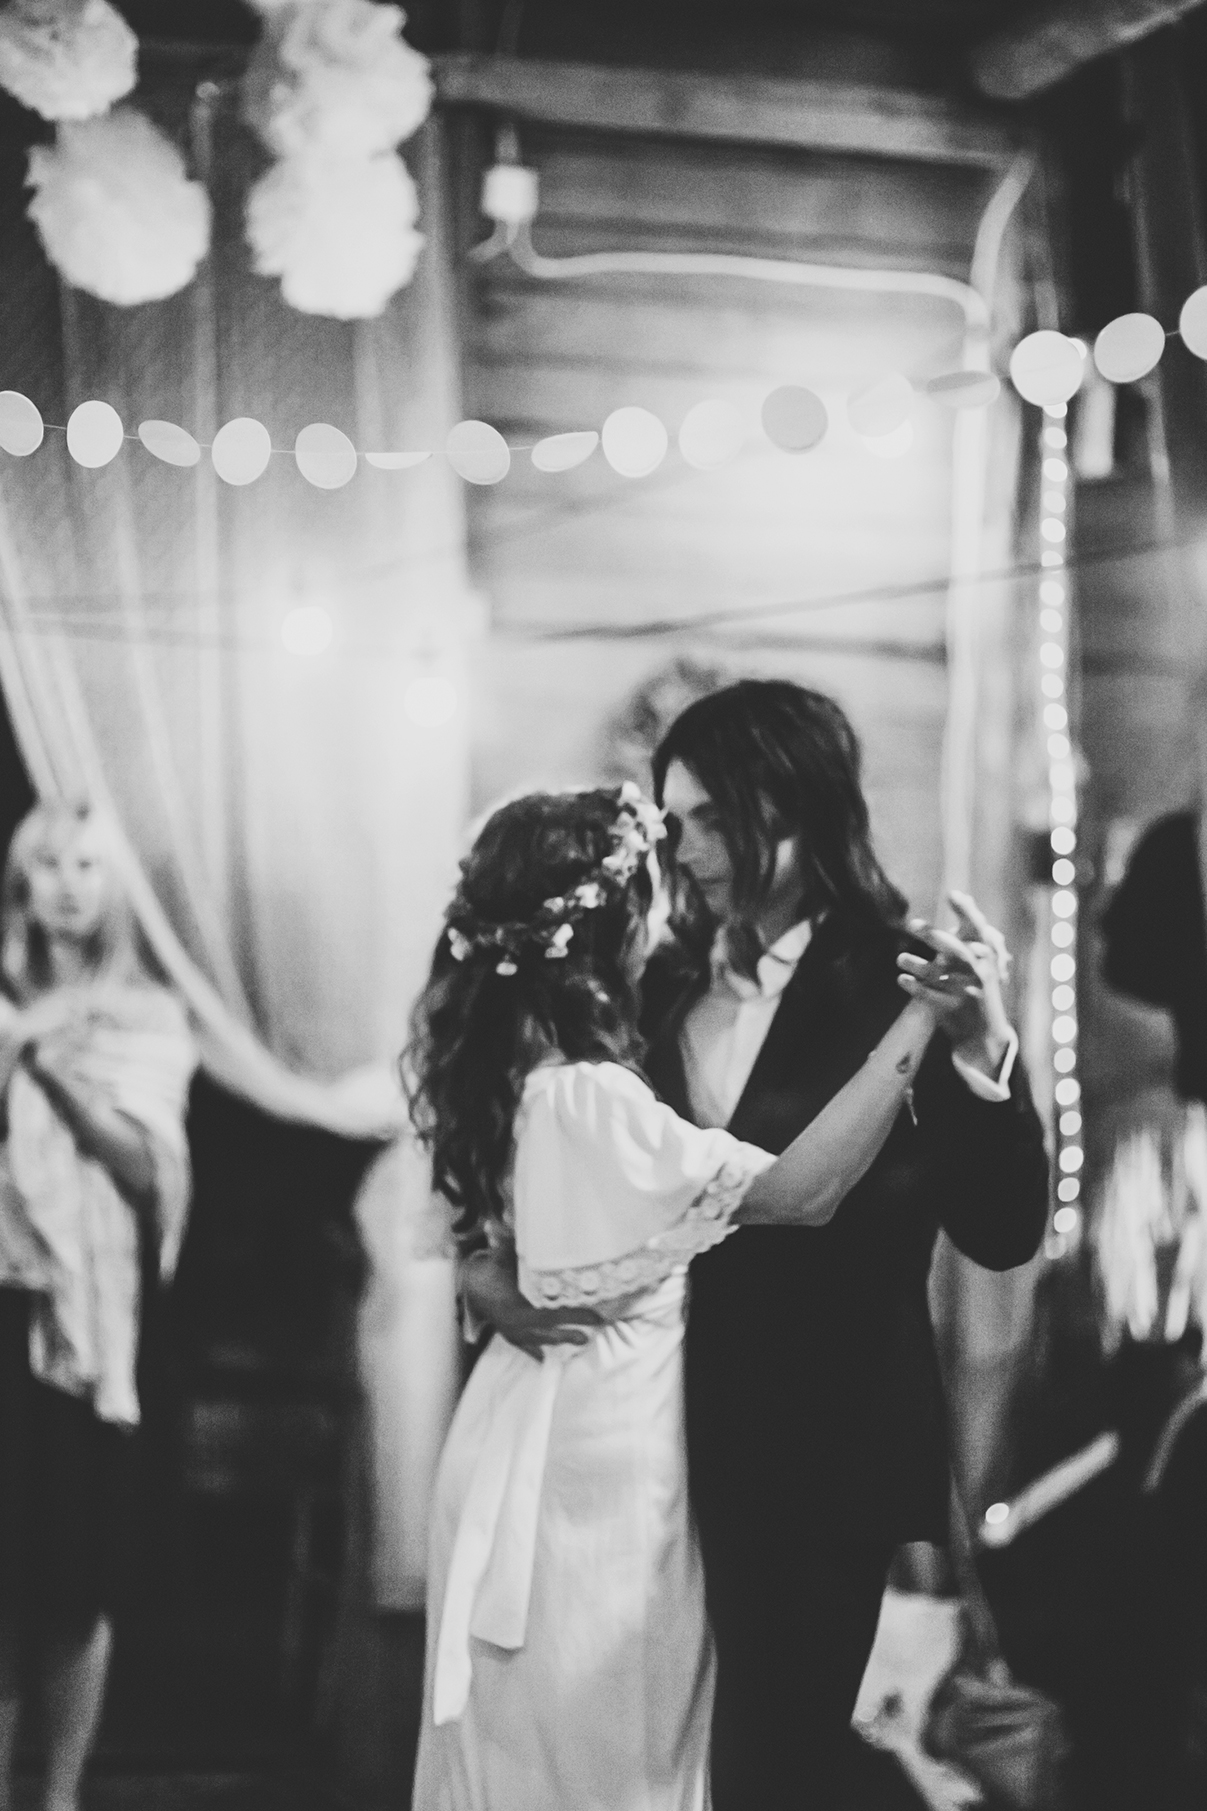 Anton's and Maria's bohemian wedding photo: Anna Malmberg n°37